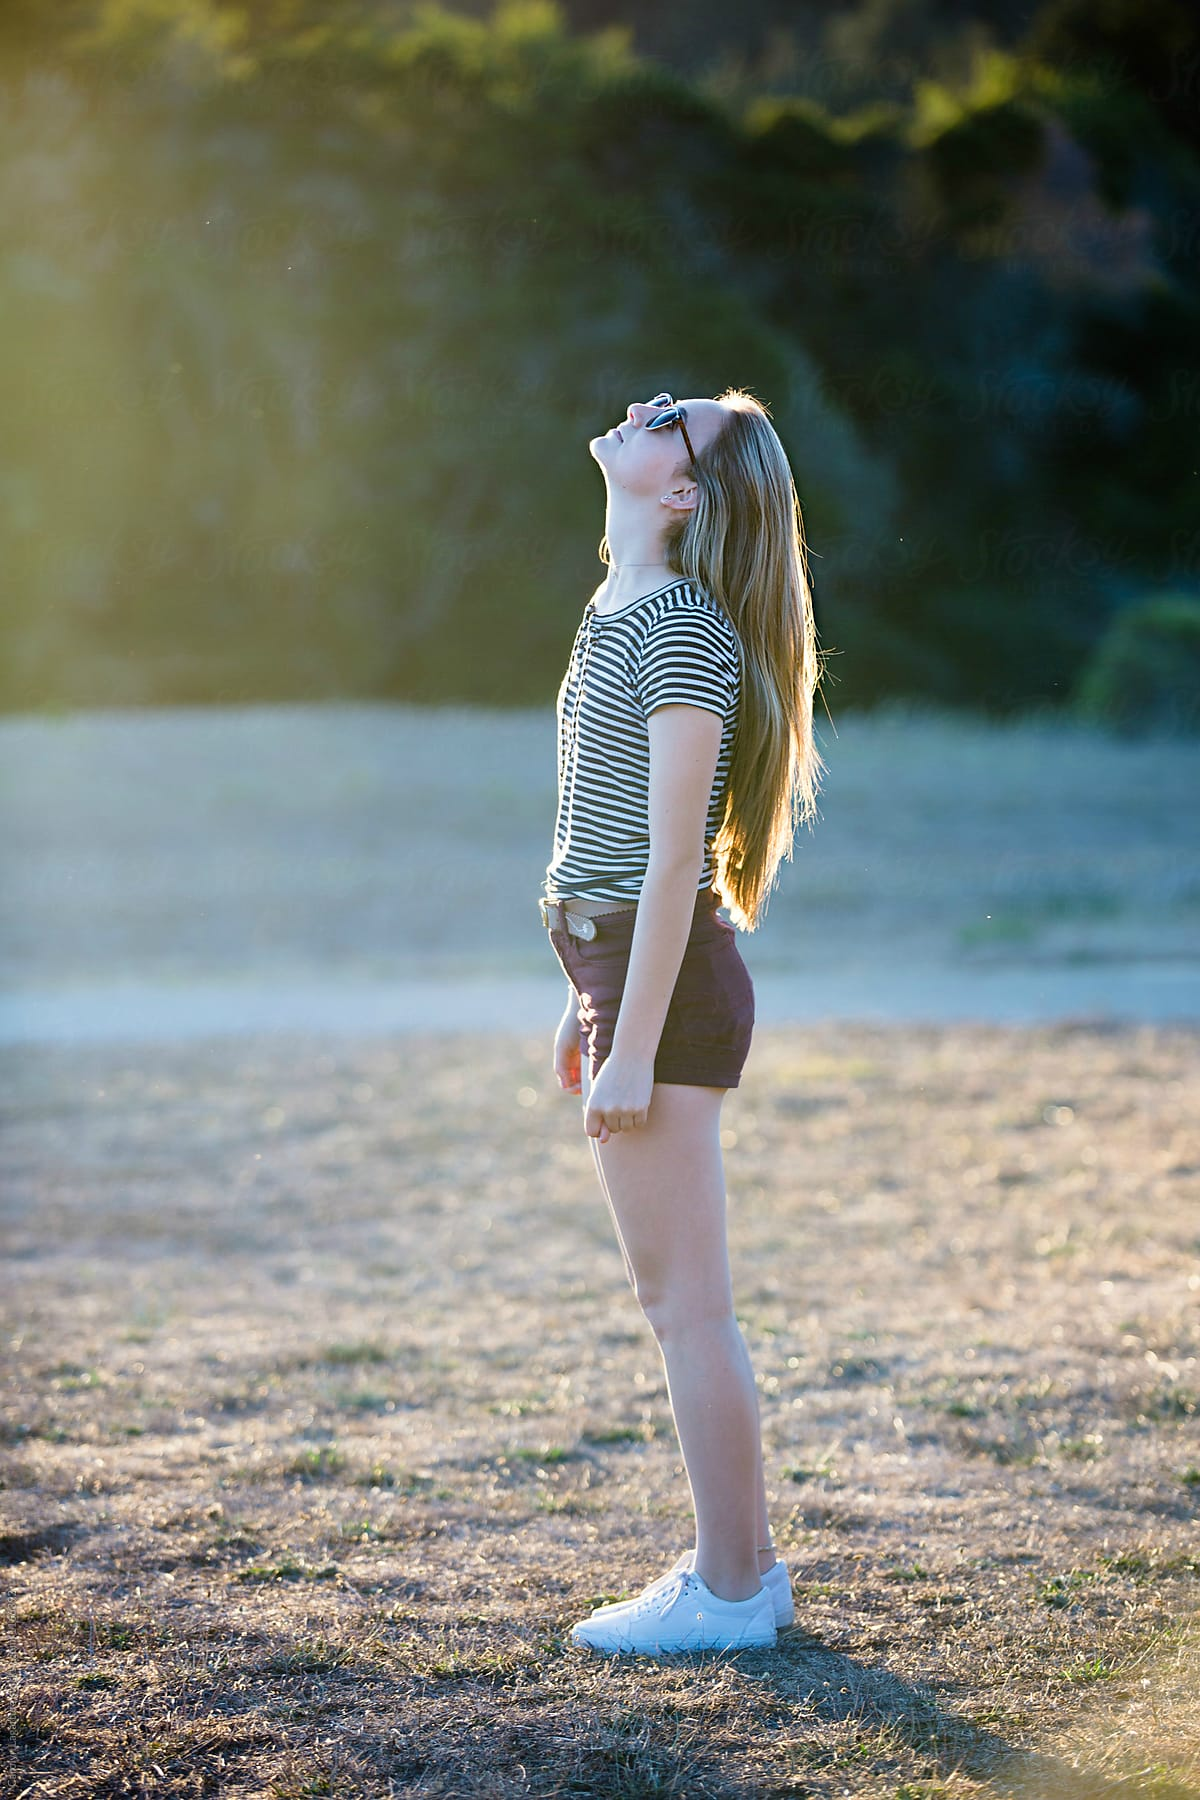 Teenage Girl With Long Blonde Hair Looking Up At The Sky By Carolyn Lagattuta Stocksy United